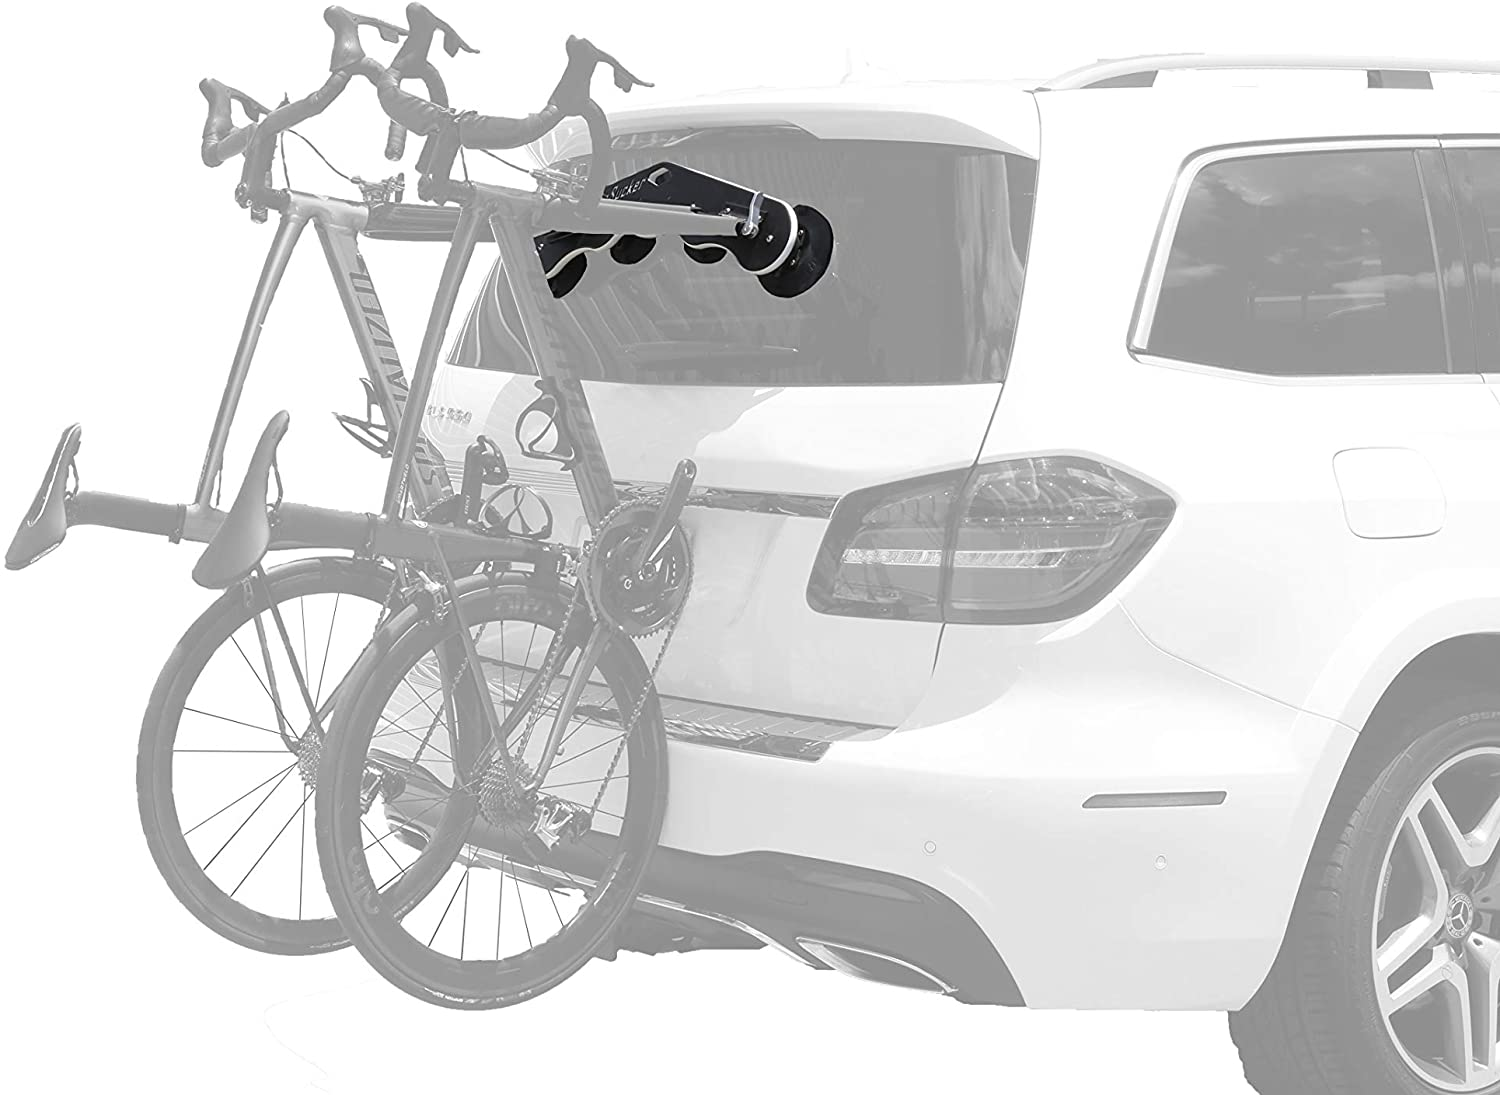 4. SeaSucker Mini Bomber 2 Bike Rack